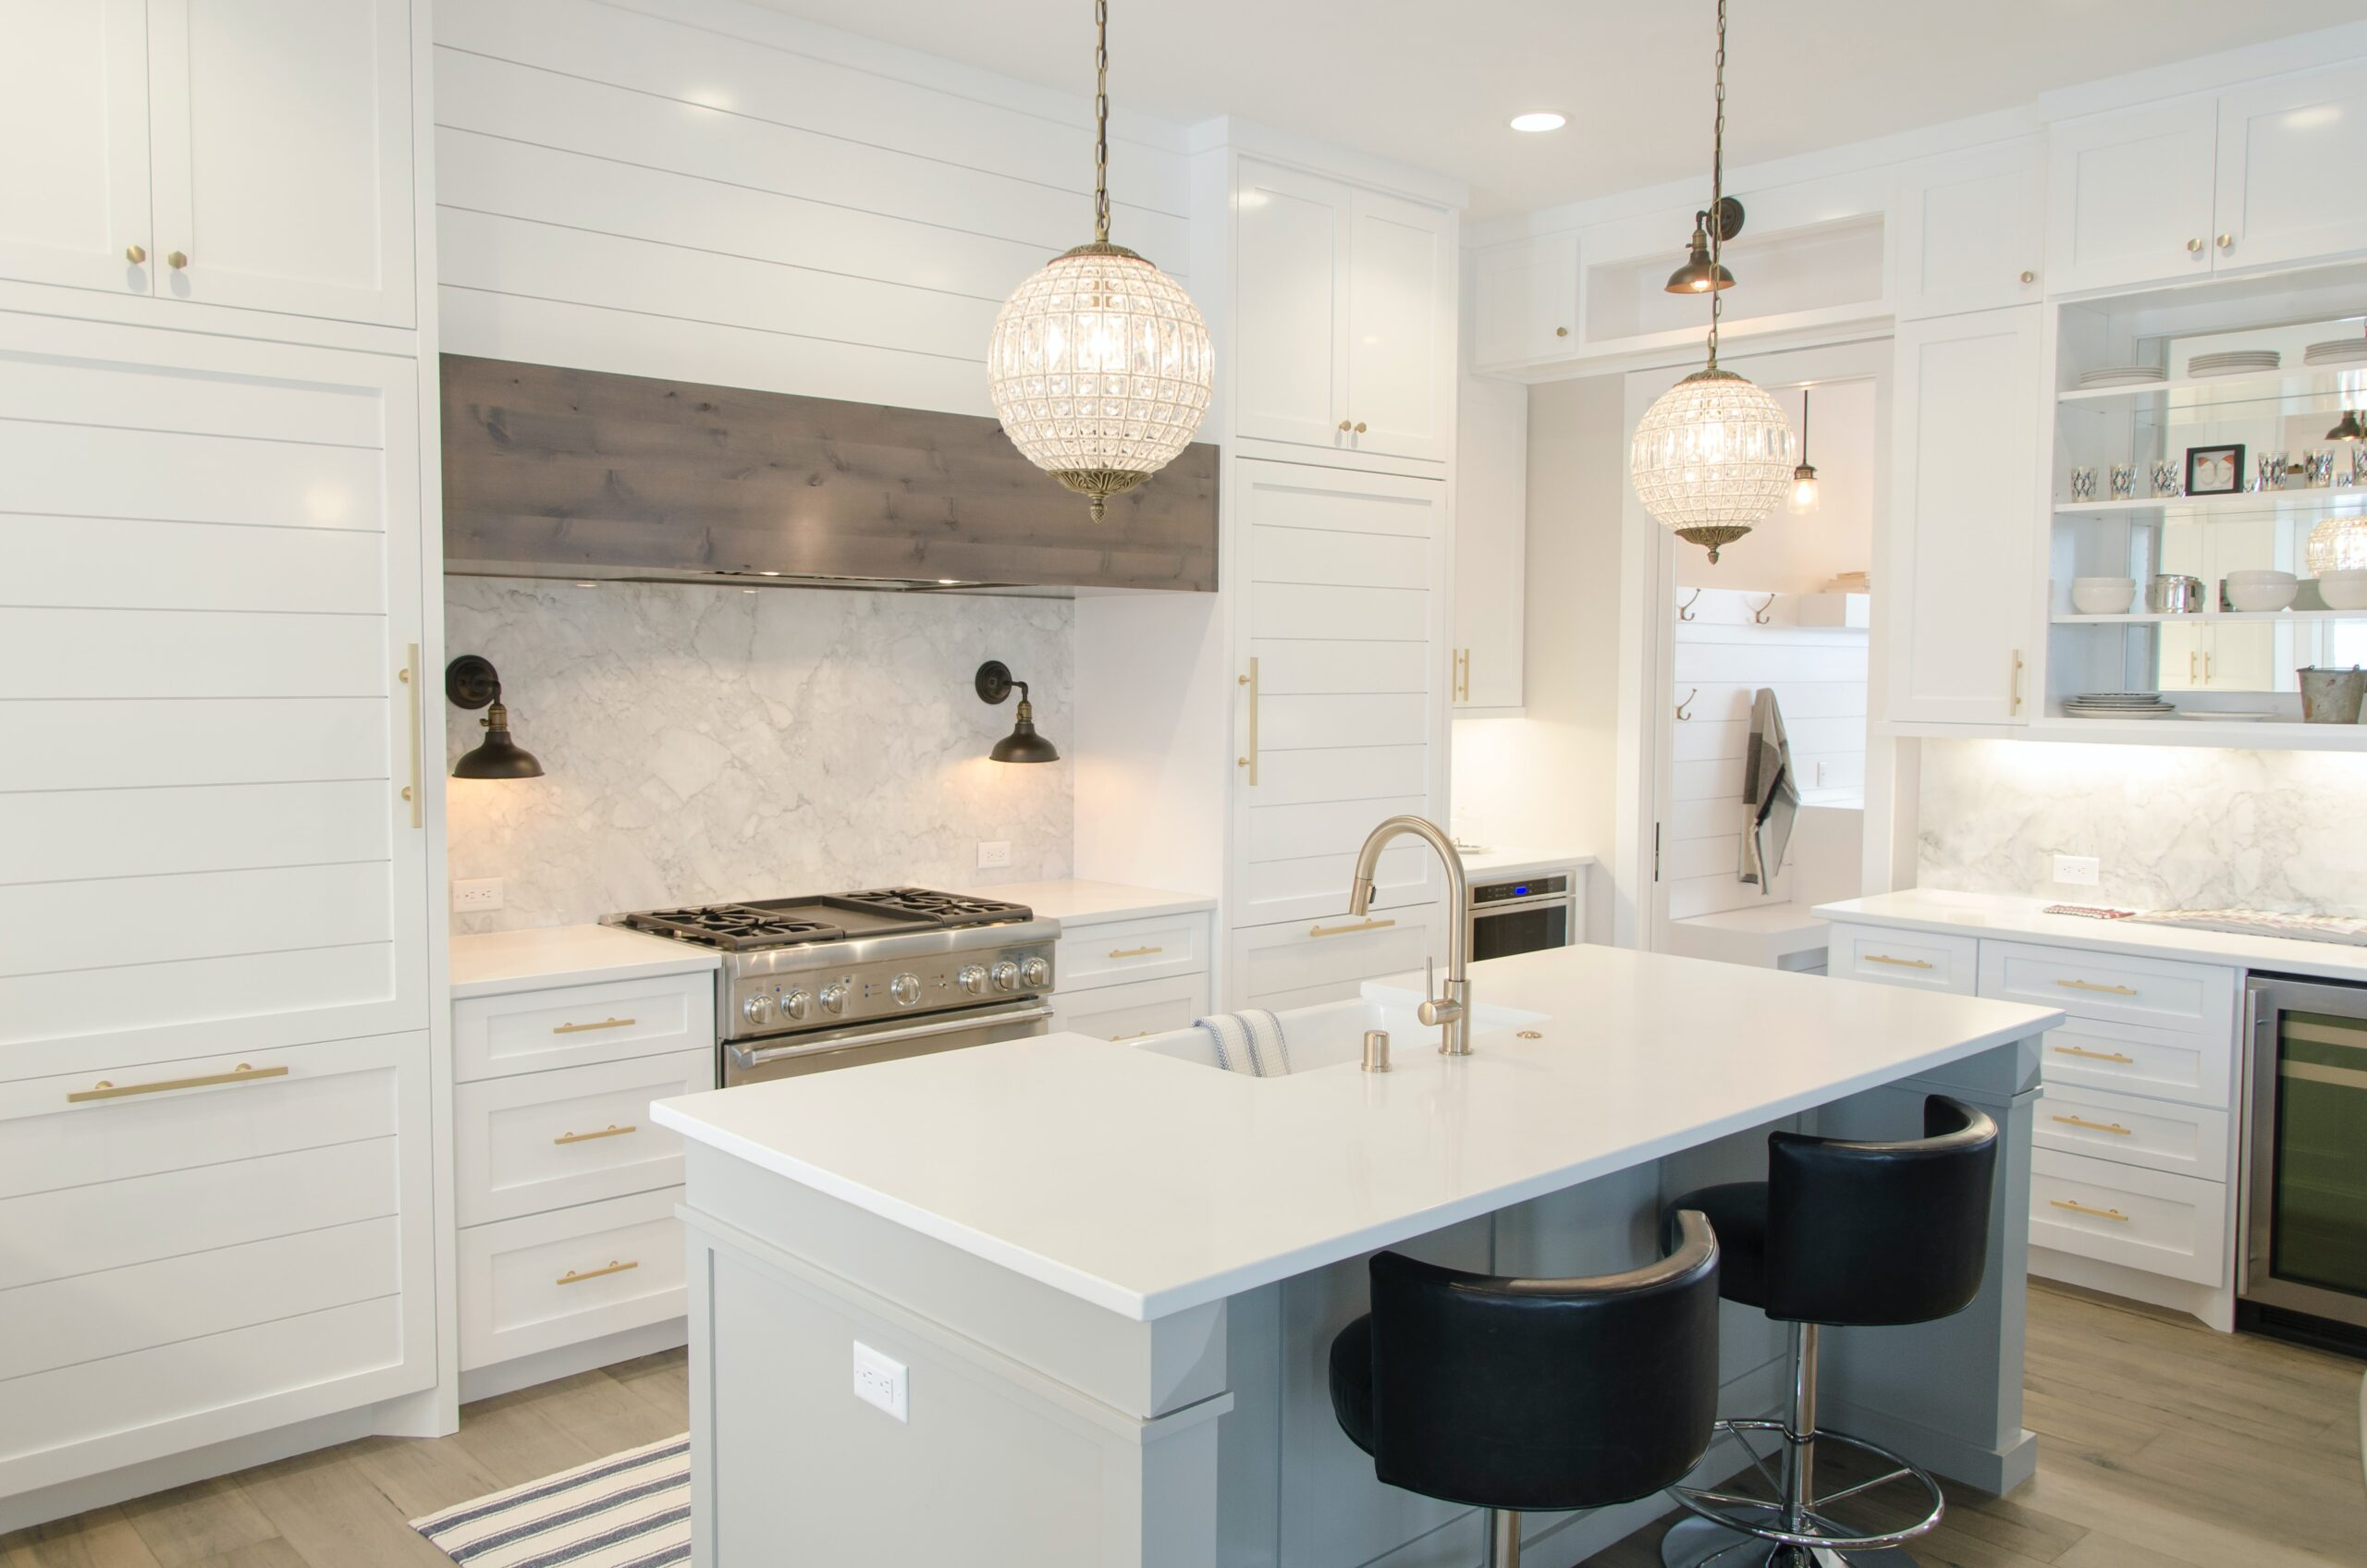 aaron-huber-galley stove center block kitchen with large hood-unsplash